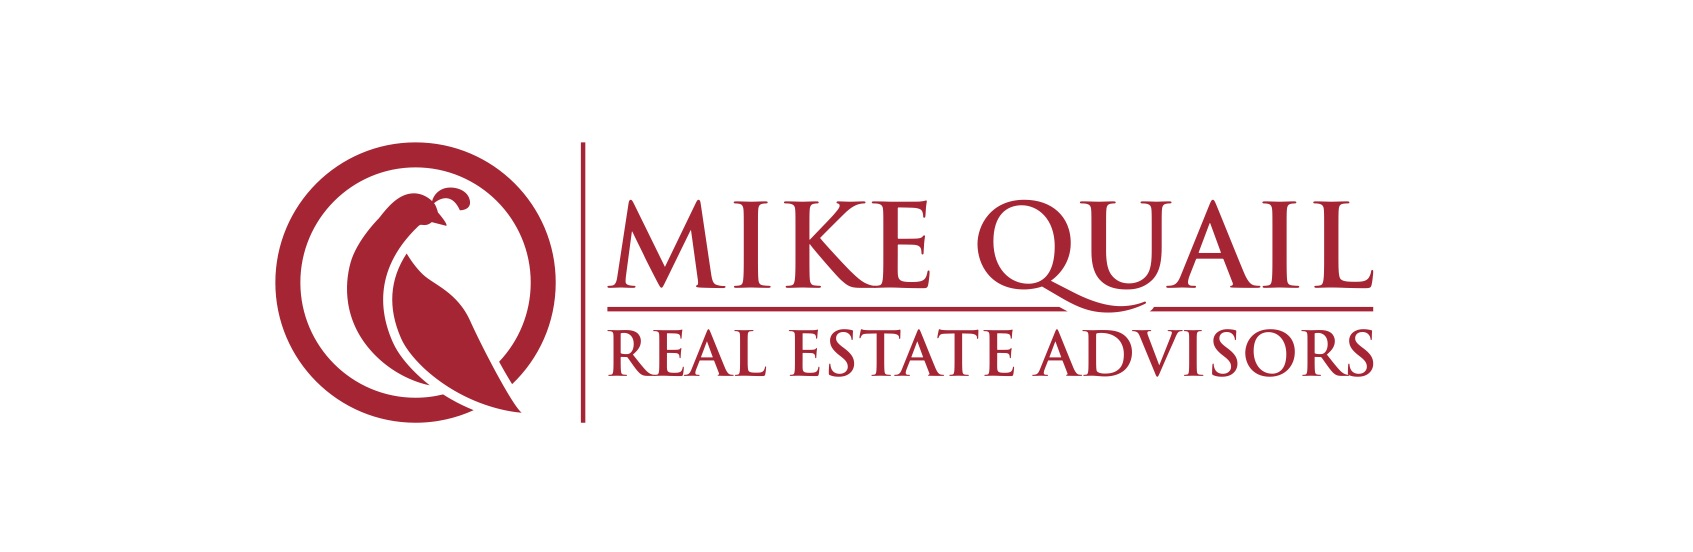 Mike Quail Real Estate logo